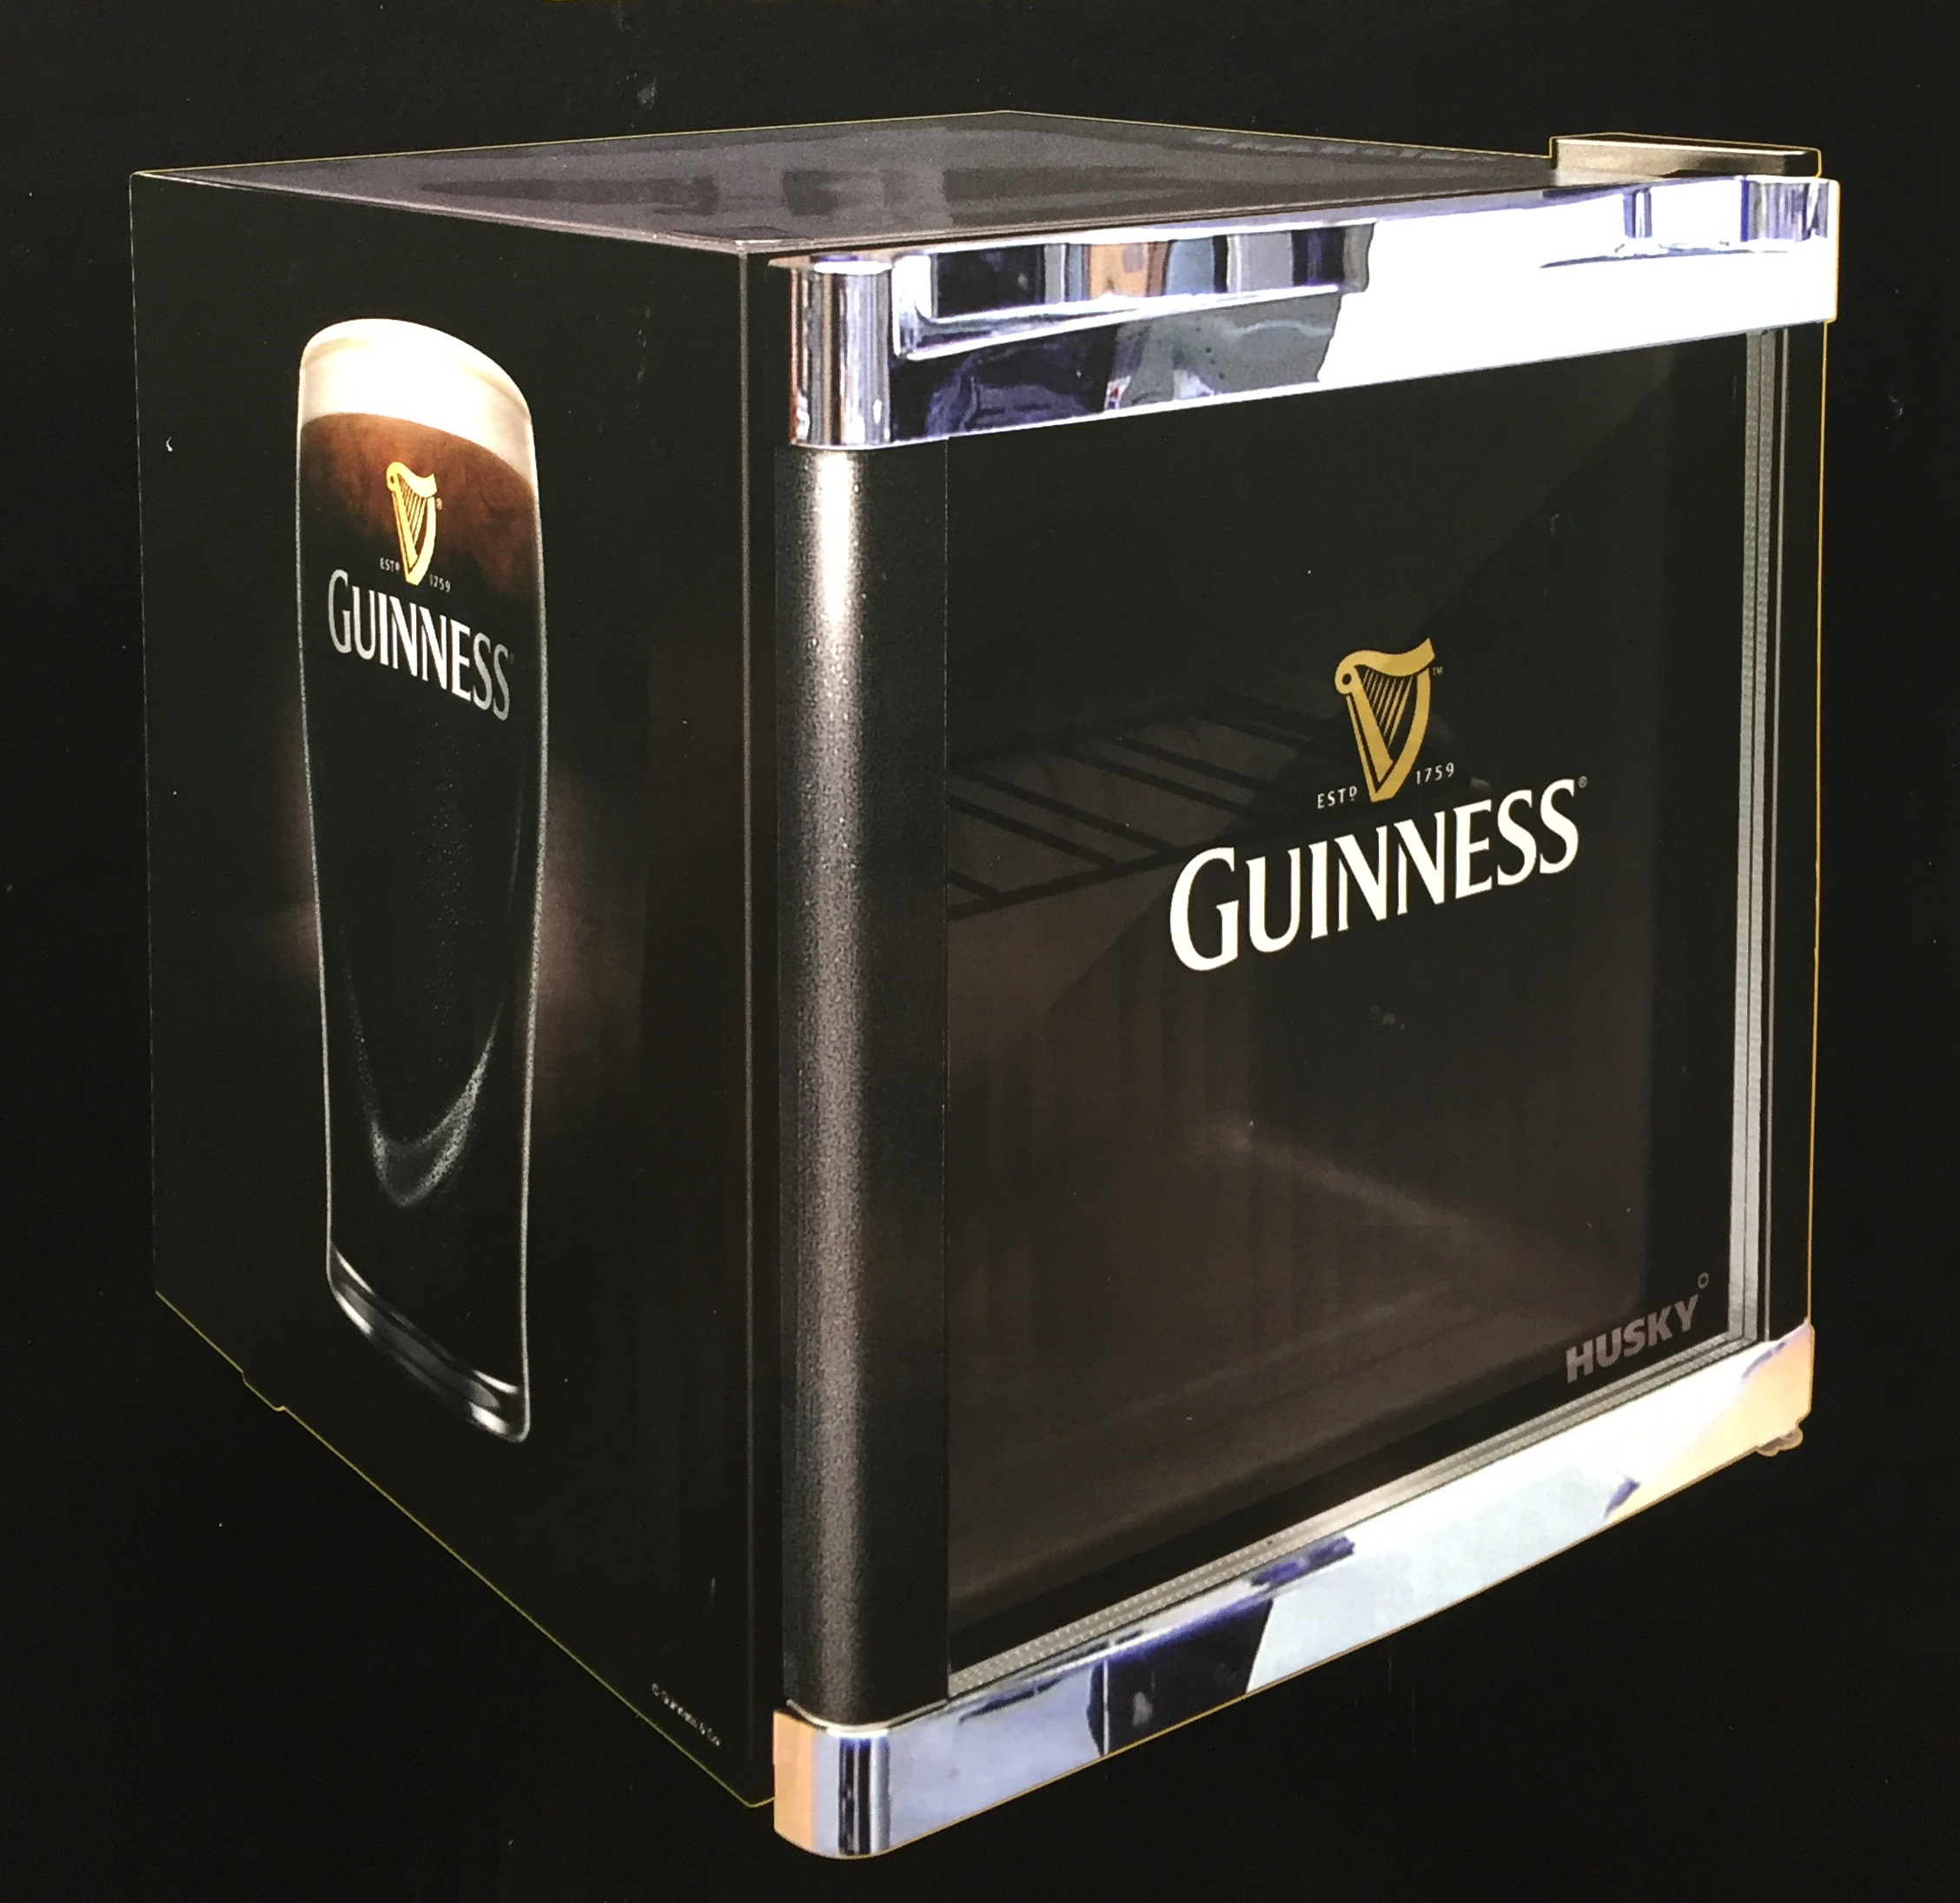 husky coolcube cool cube k hlschrank guinness design guiness a neu ebay. Black Bedroom Furniture Sets. Home Design Ideas